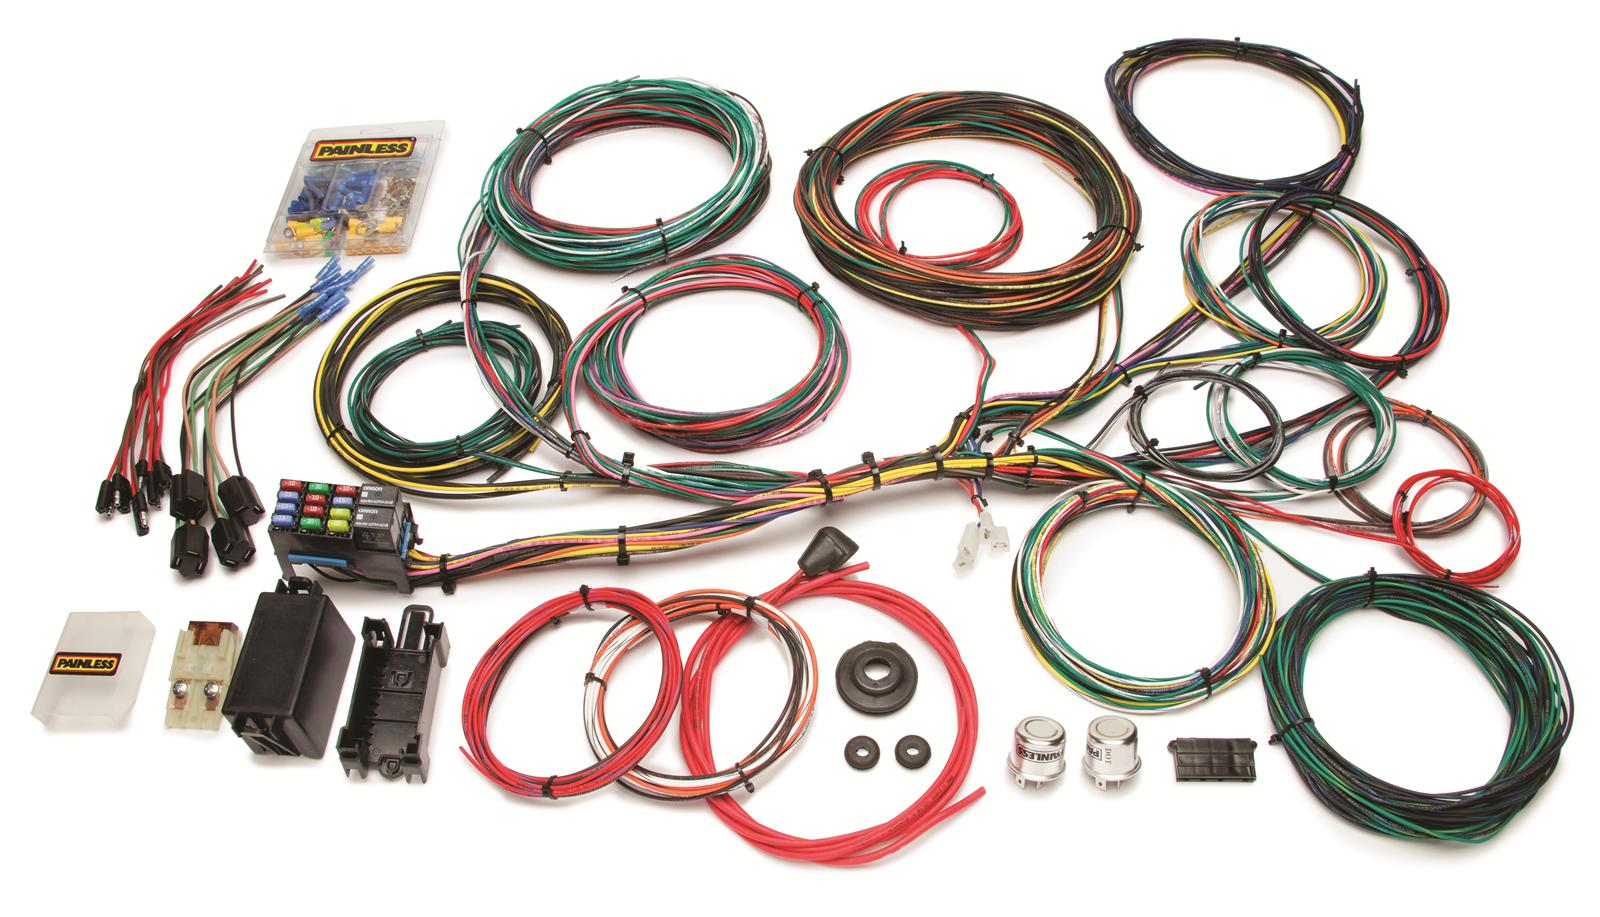 1950 Ford Car Wire Harness Painless Performance 21 Circuit Color Coded Universal Harnesses 10123 Free Shipping On Orders Over 99 At Summit Racing